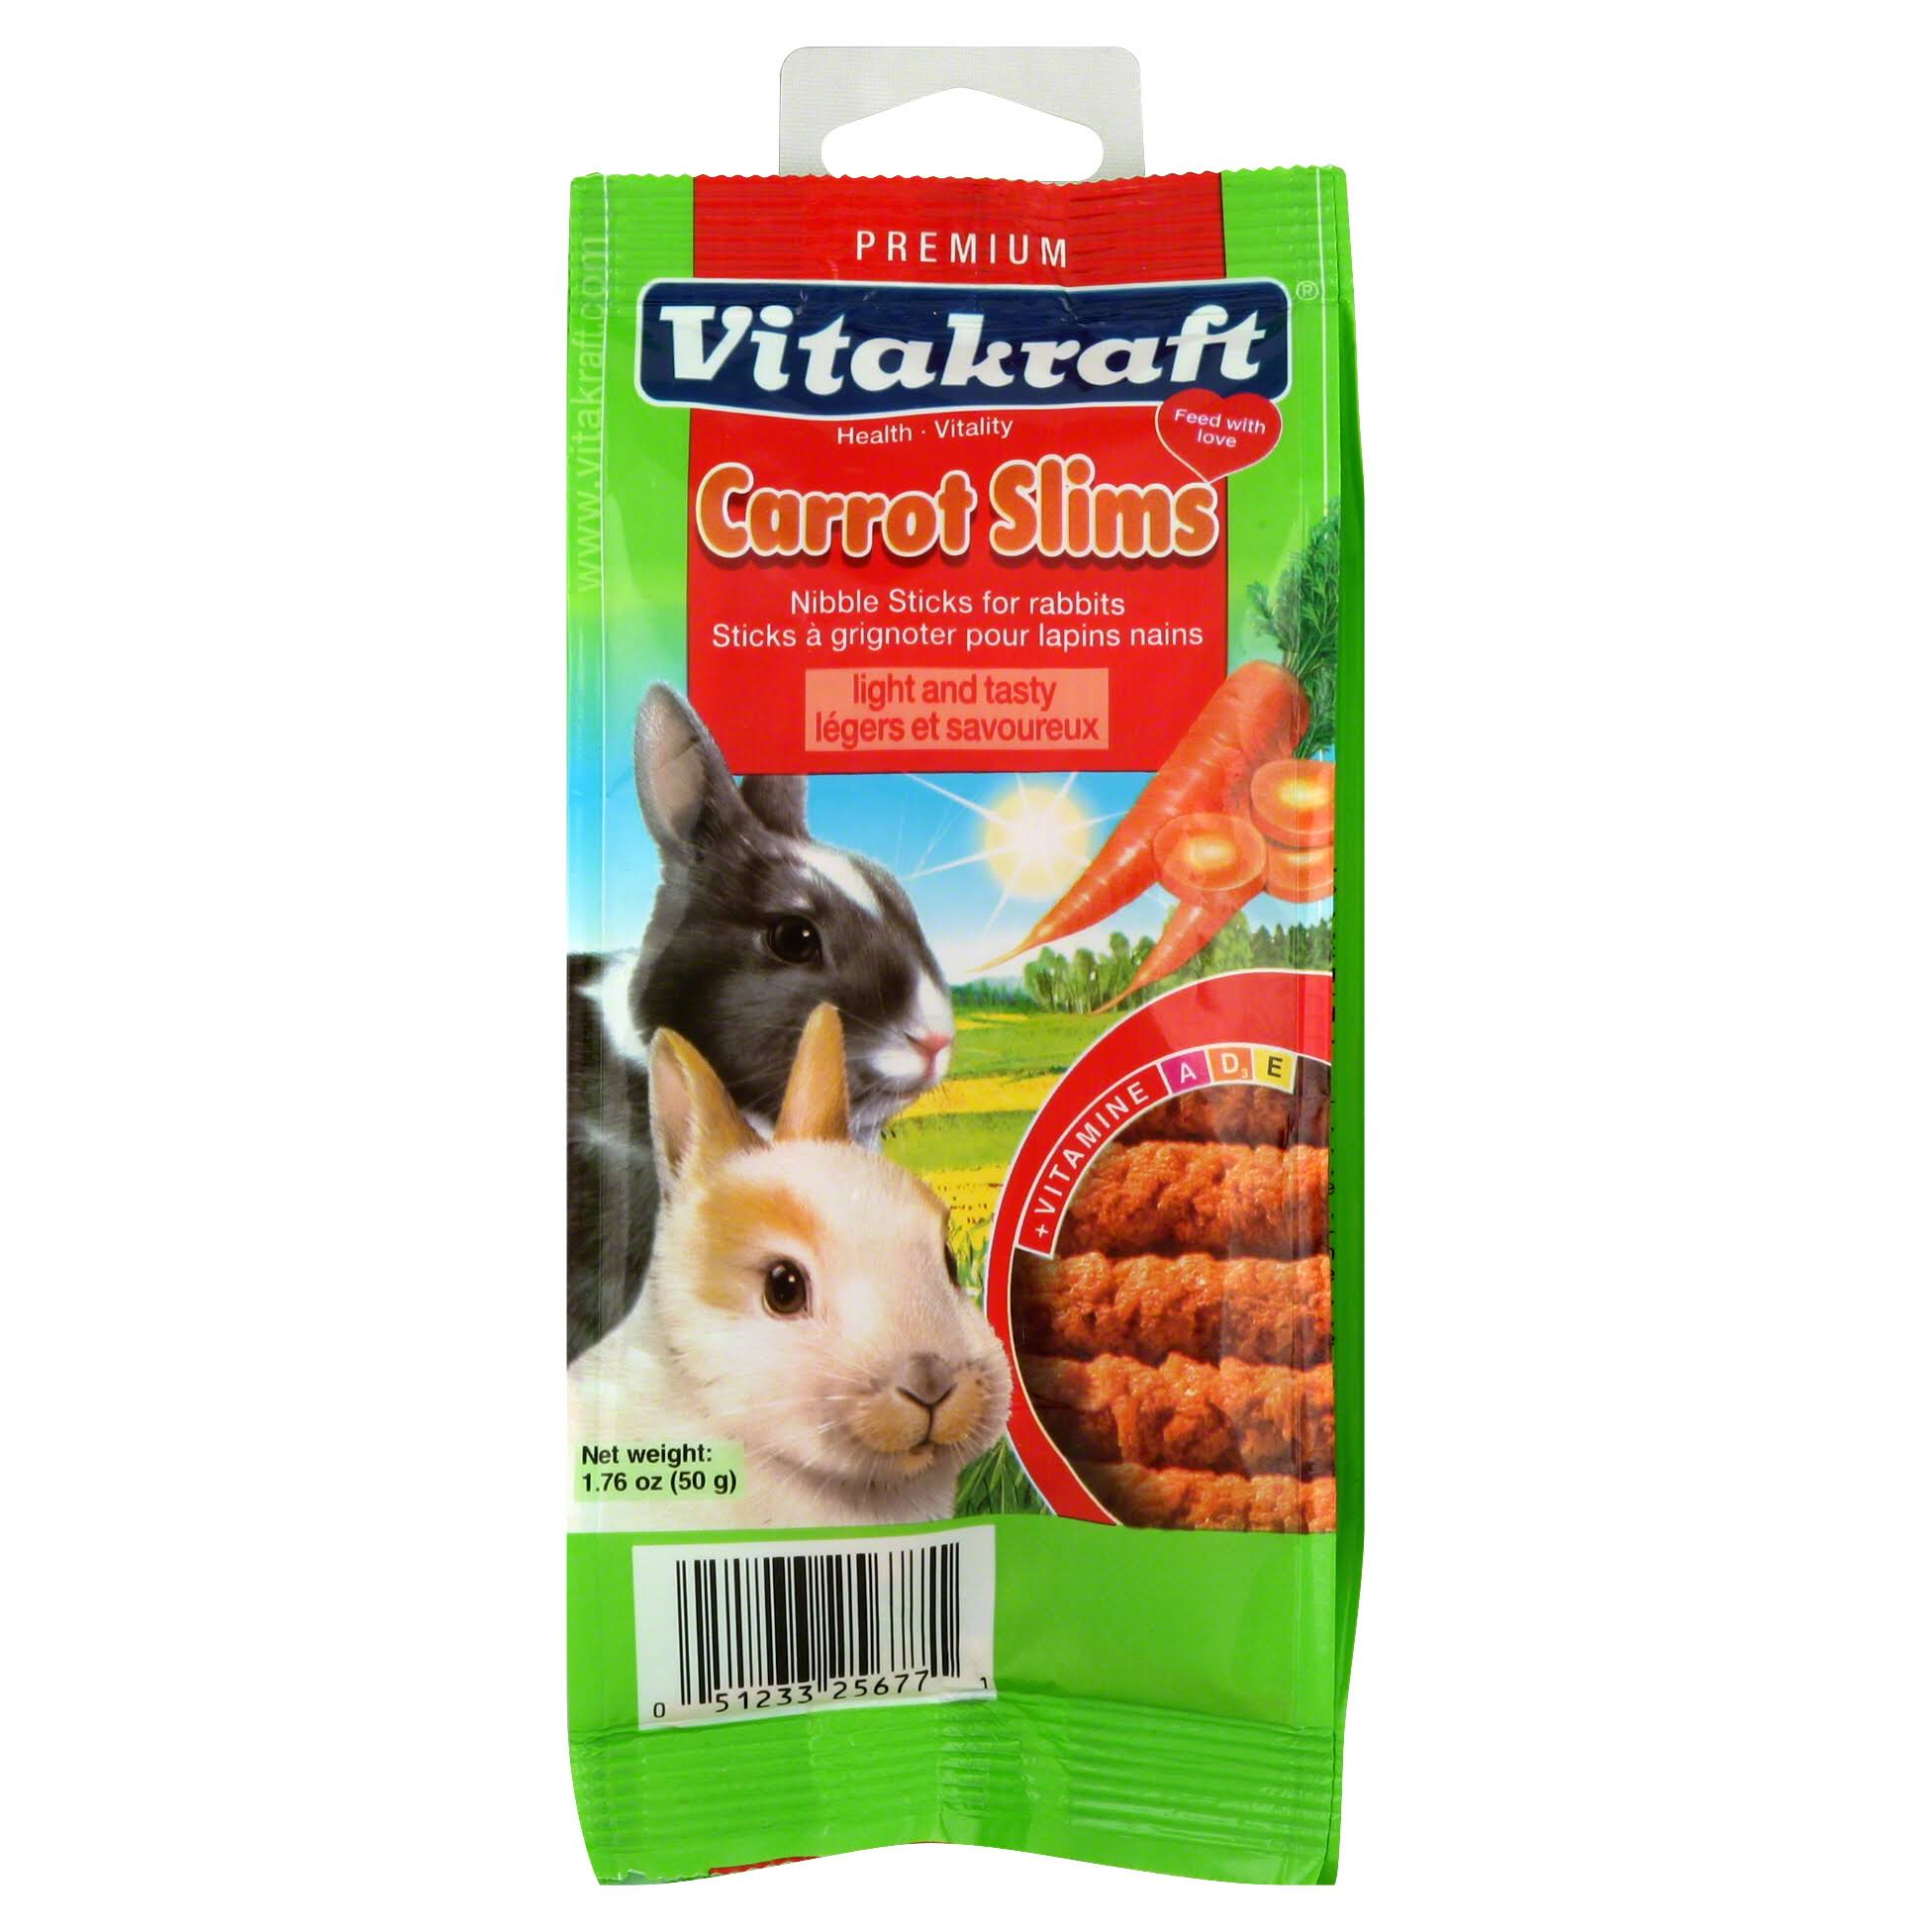 Vitakraft Rabbit Carrot Slims Nibble Sticks - 50g